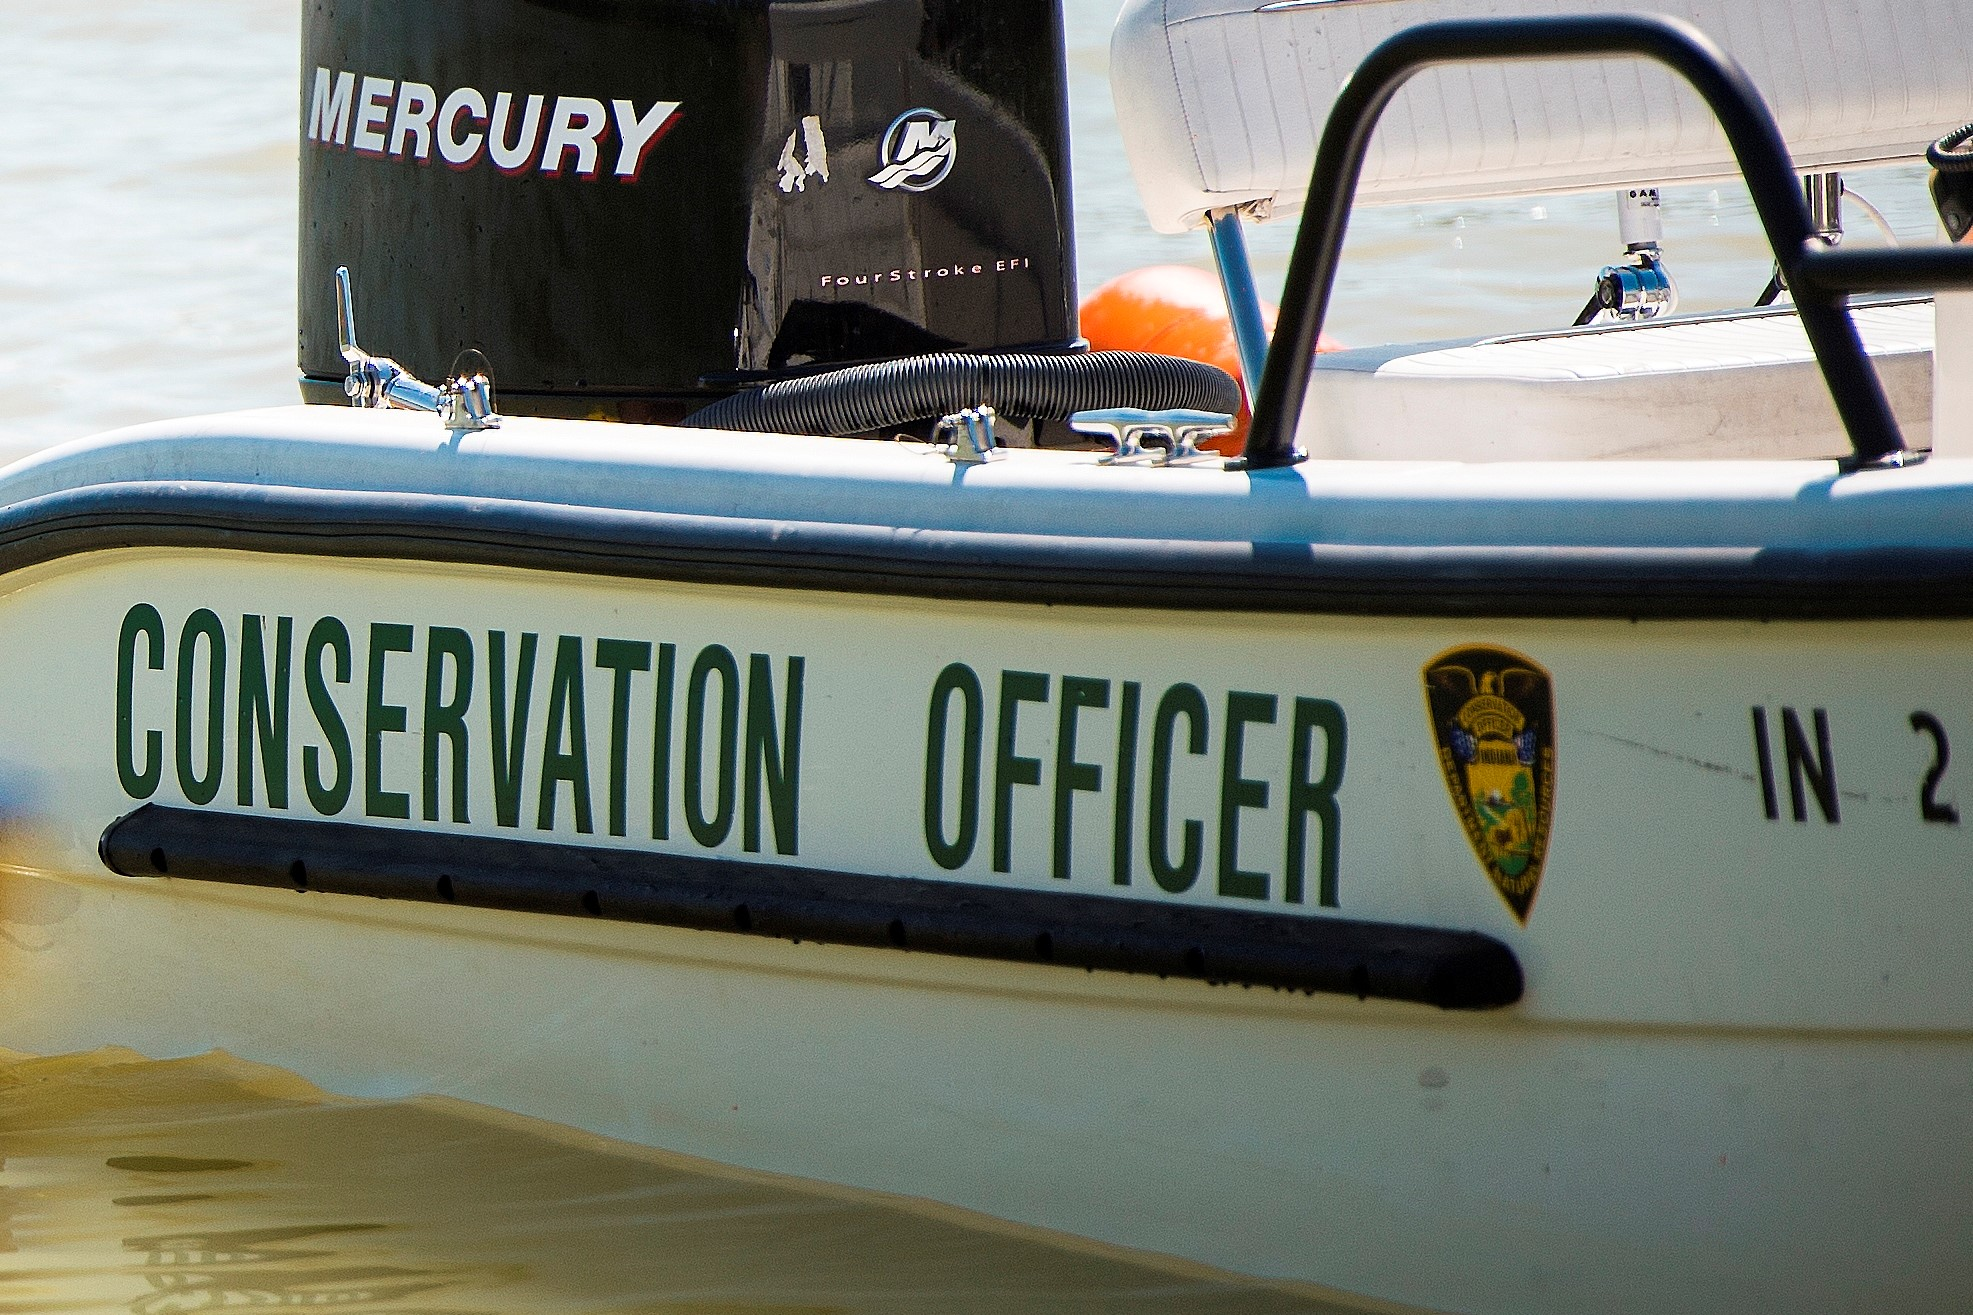 A DNR conservation officer's boat on the water.